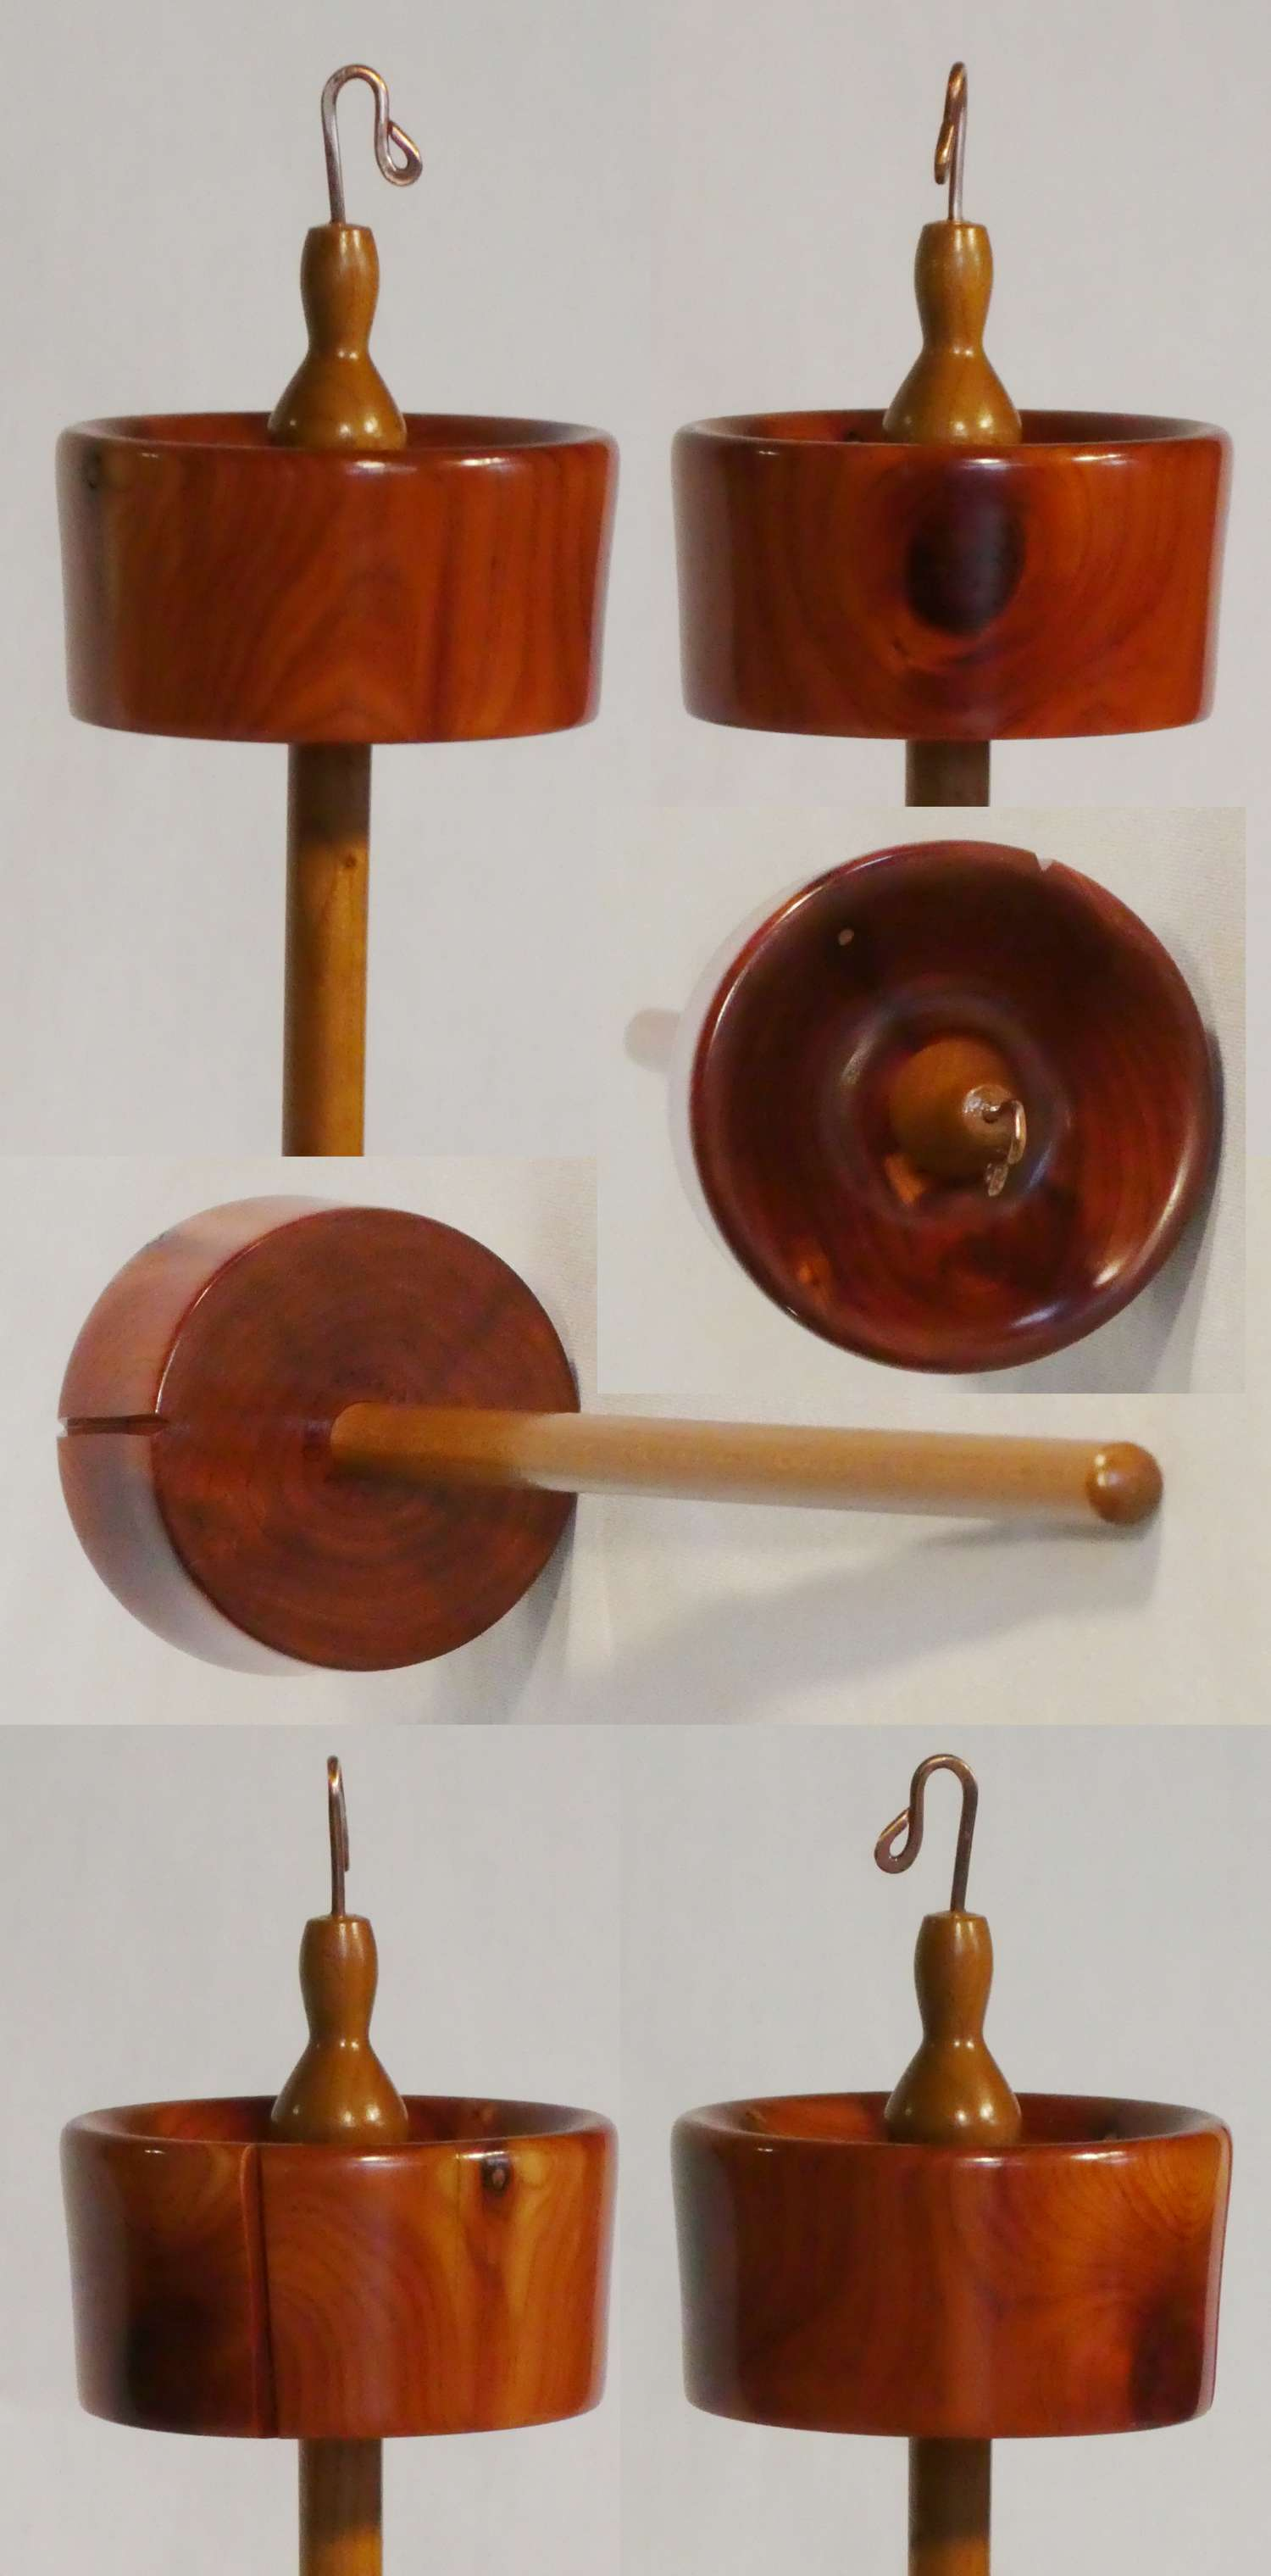 Top whorl drop spindle hand turned from cedar on a cherry shaft by Cynthia D. Haney.